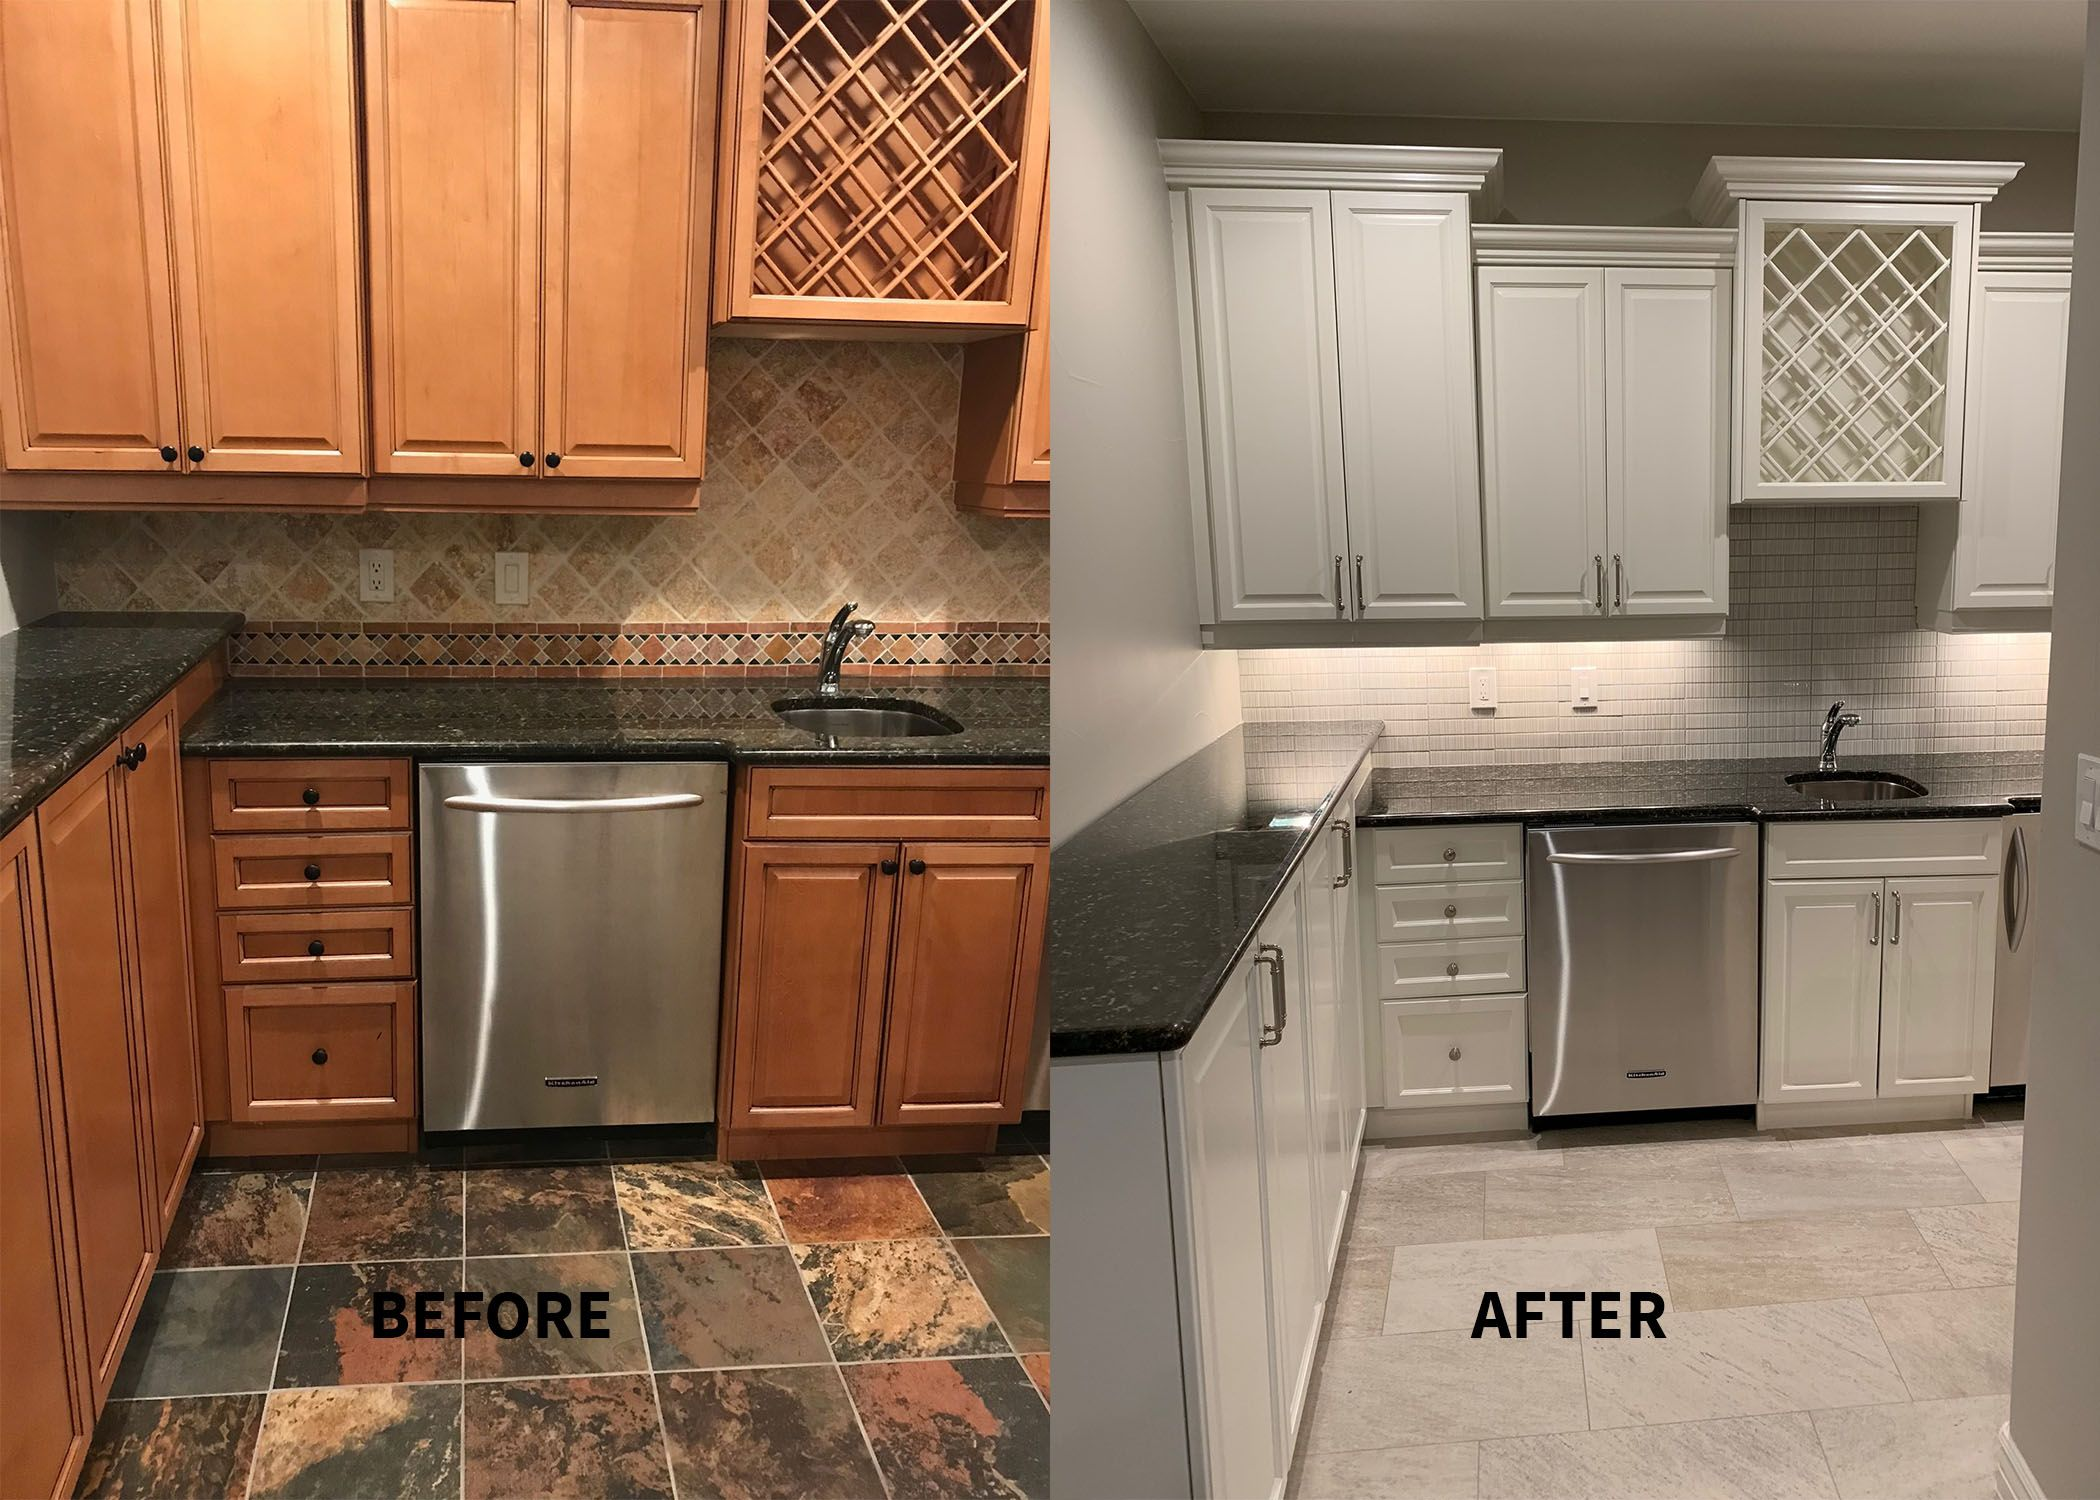 pin by helix painting on interior color trends painting cabinets colorful interiors on kitchen cabinets painted before and after id=12319